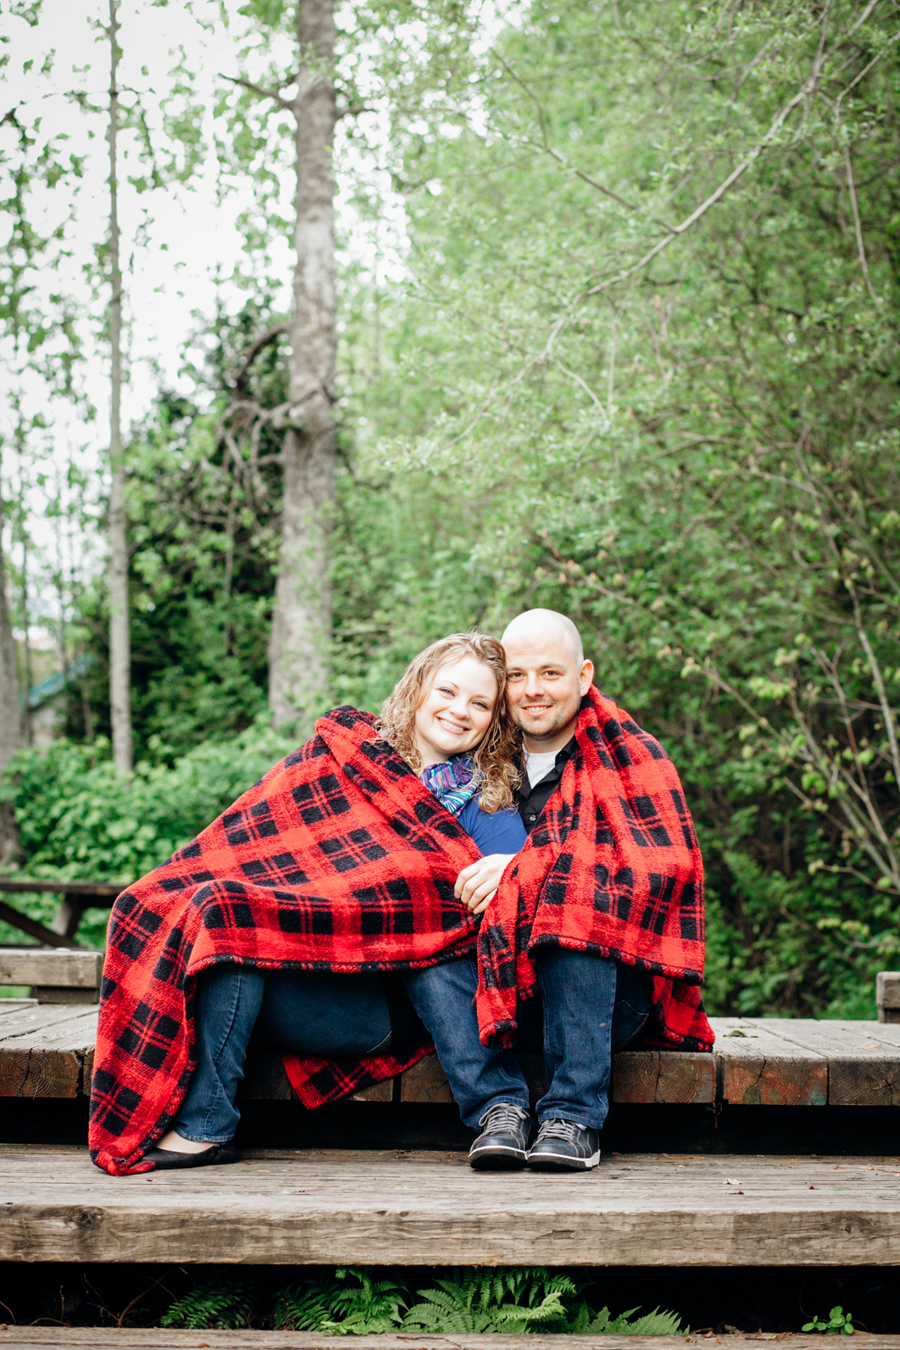 014-mill-creek-washington-engagement-katheryn-moran-photography.jpg